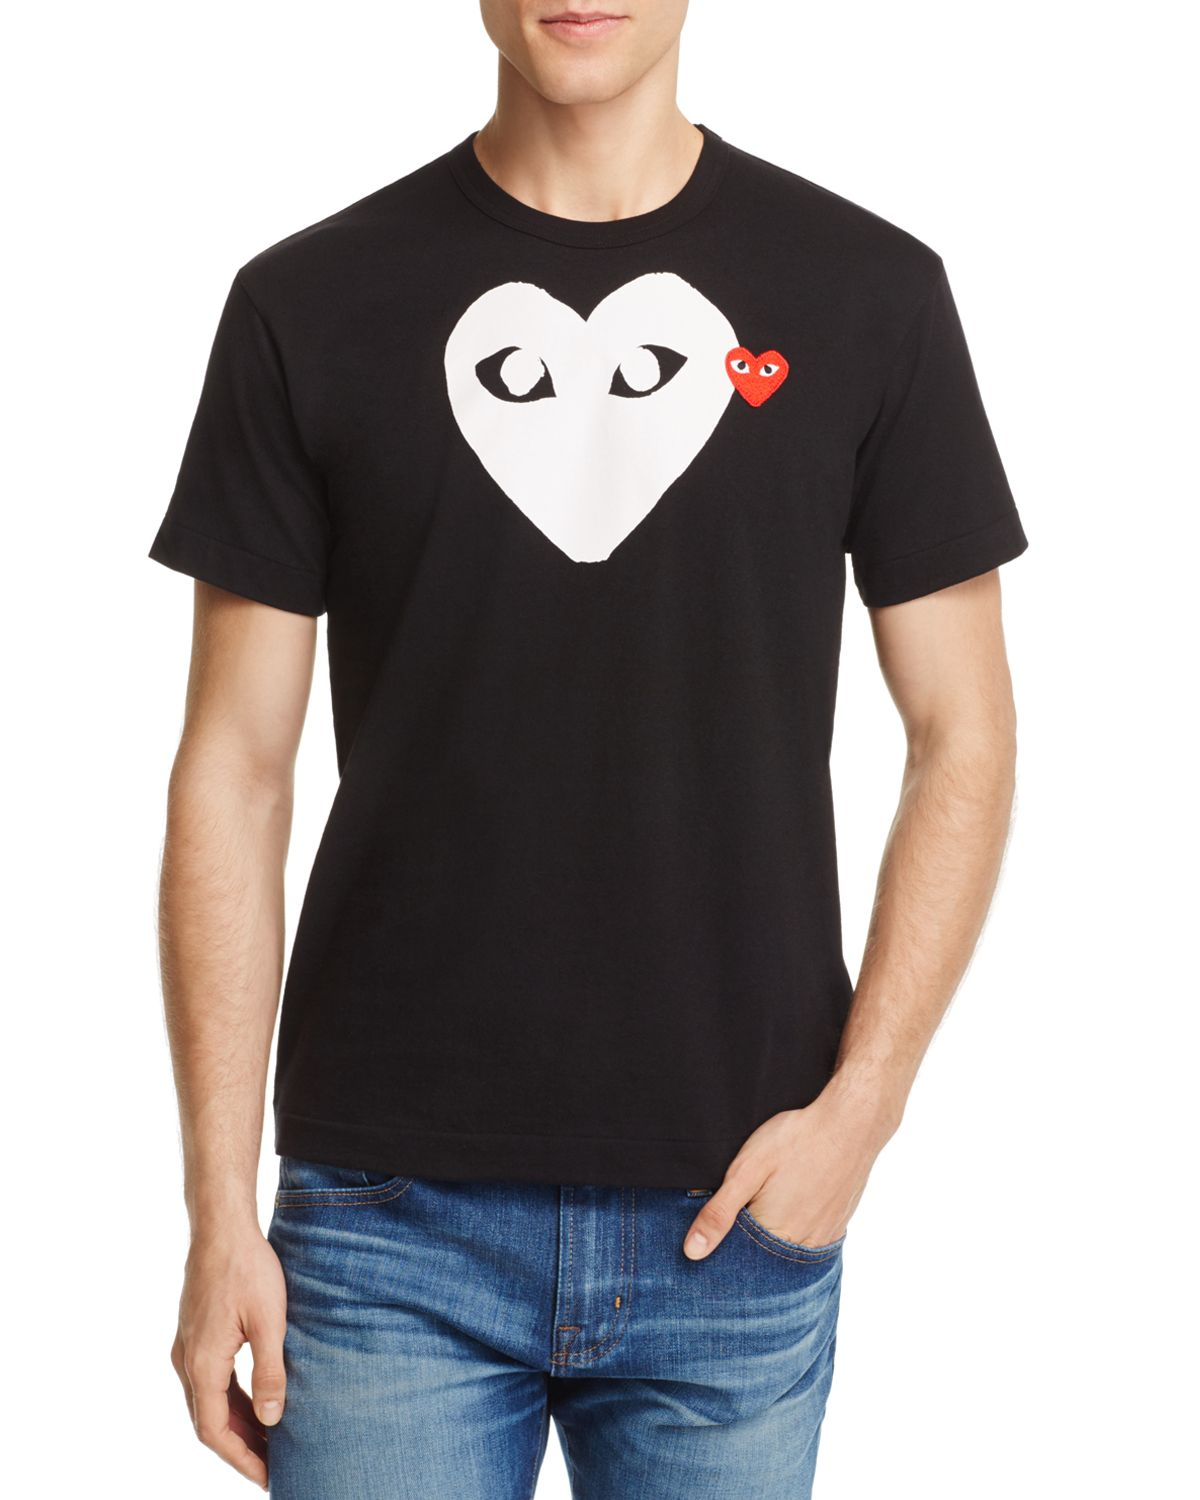 Grey and Red Double Heart T-Shirt Comme Des Garçons